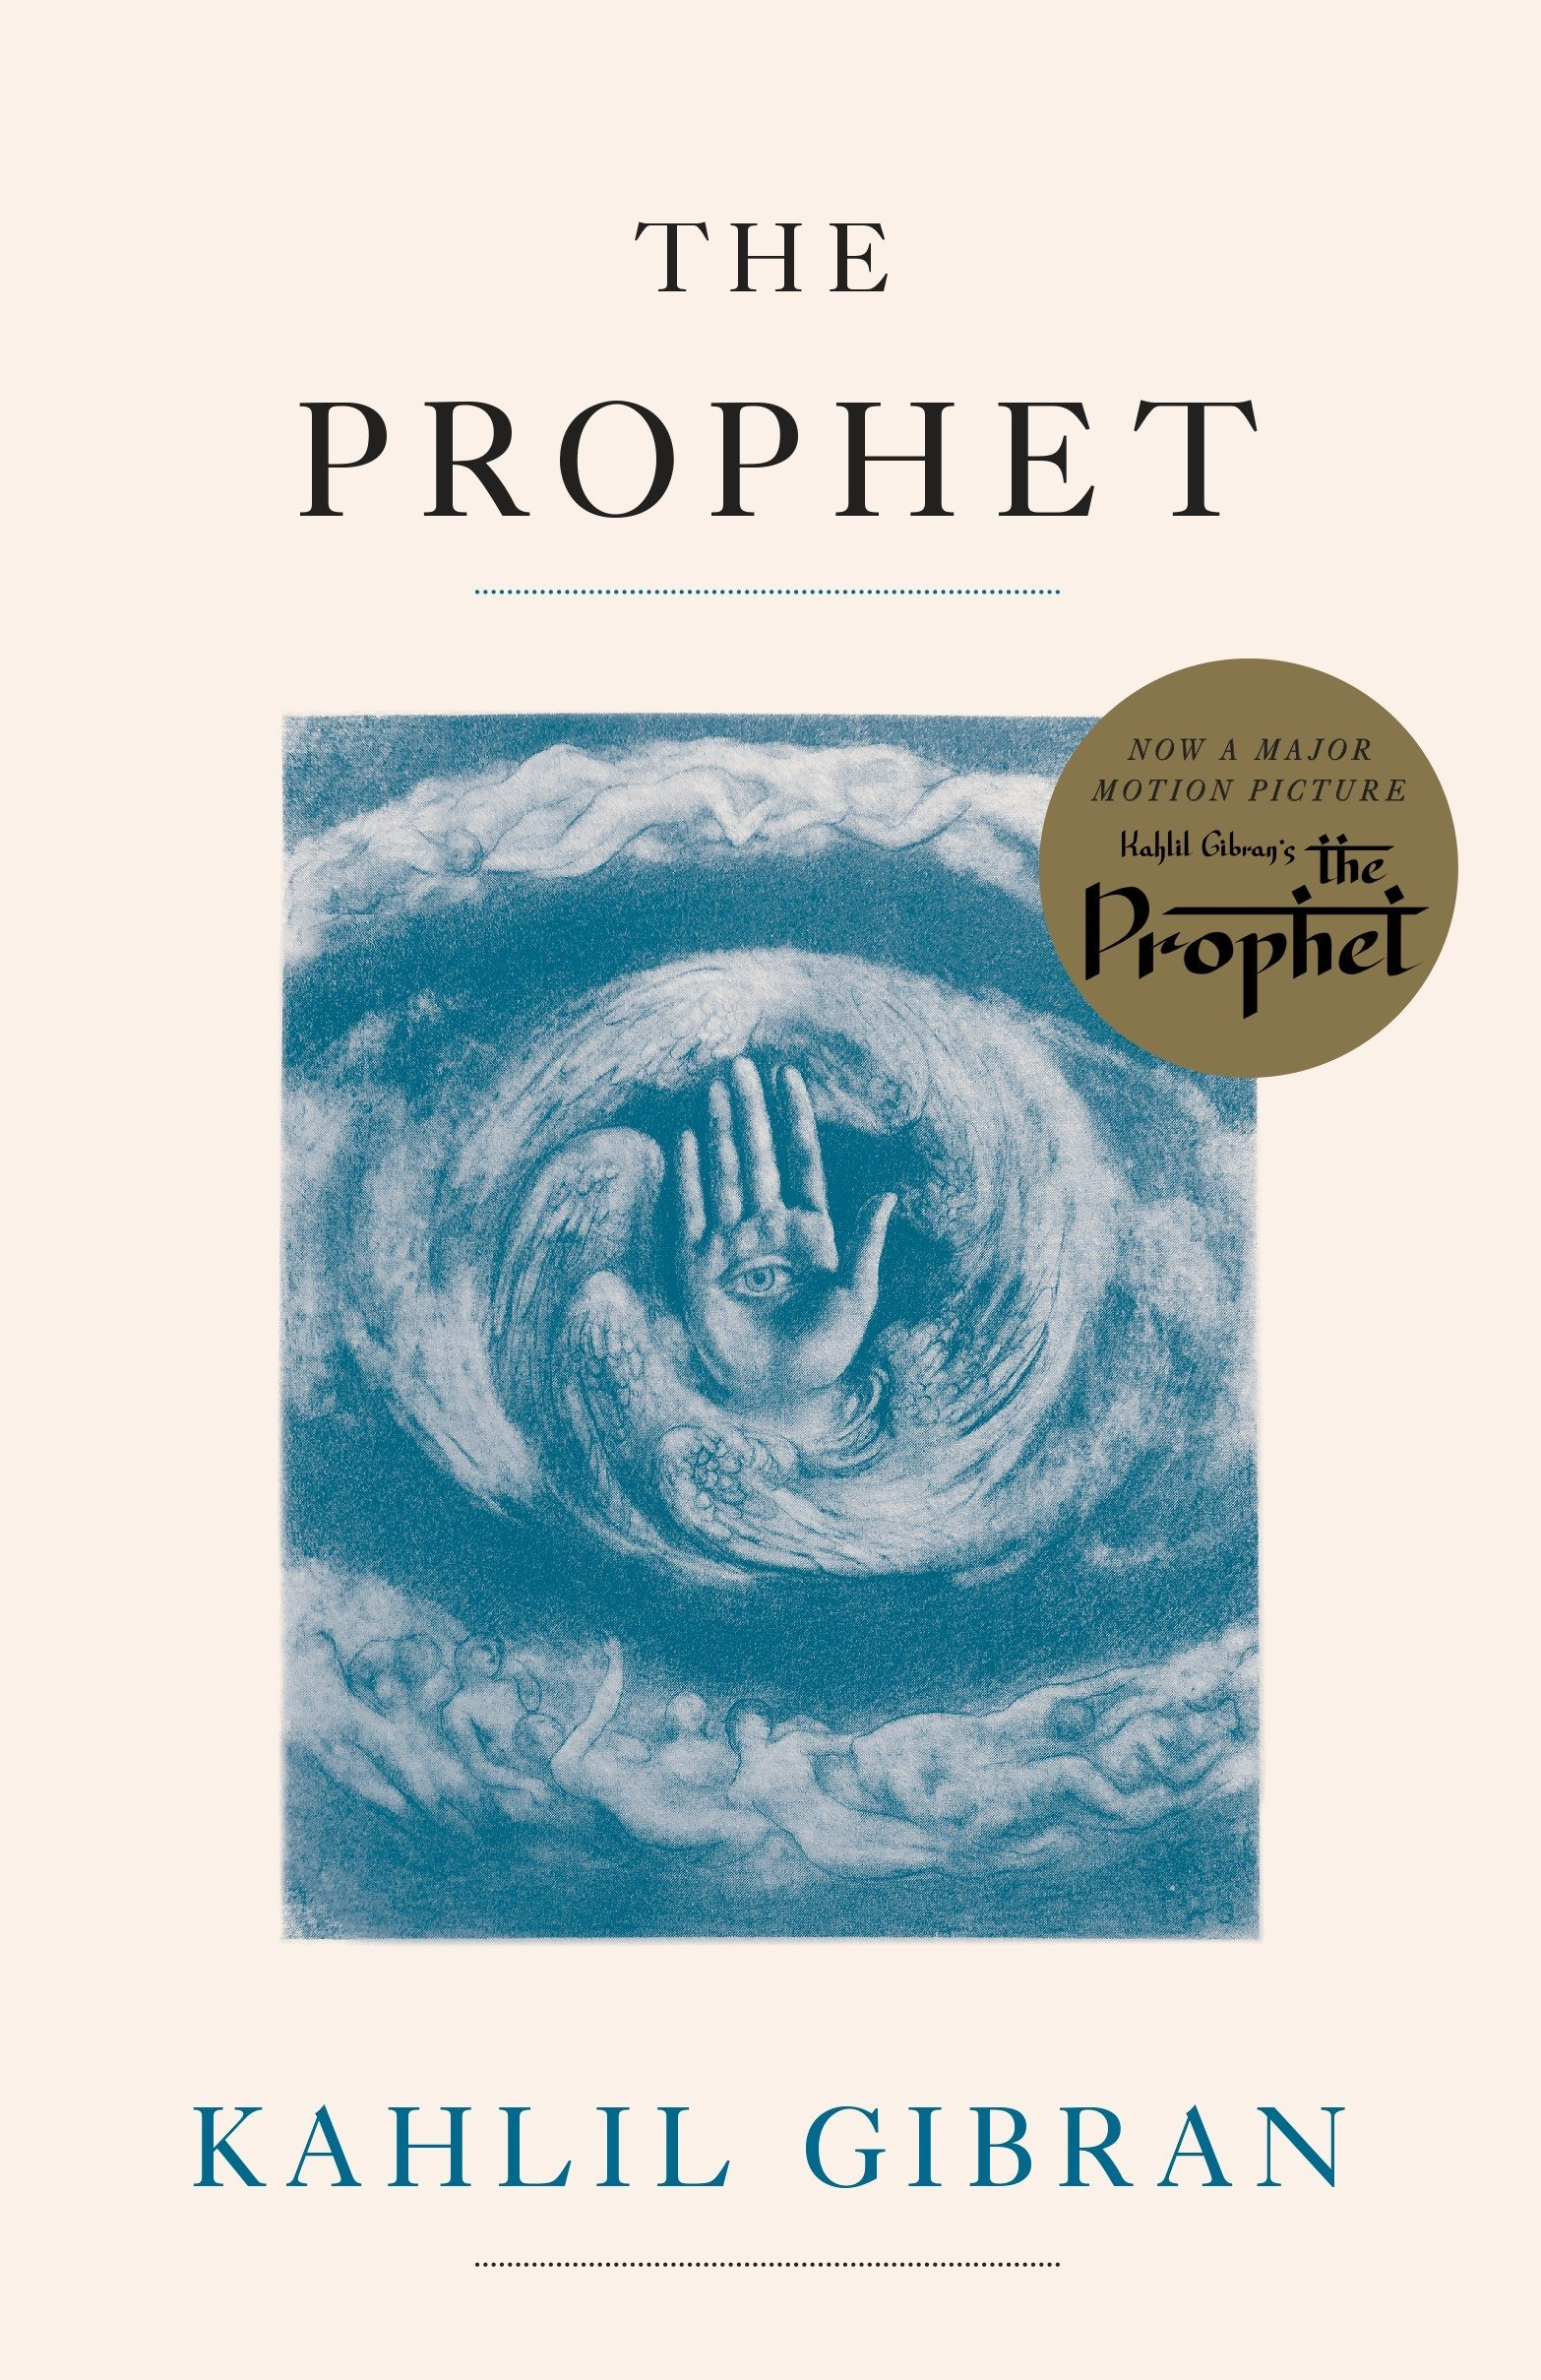 The Prophet (Vintage International)